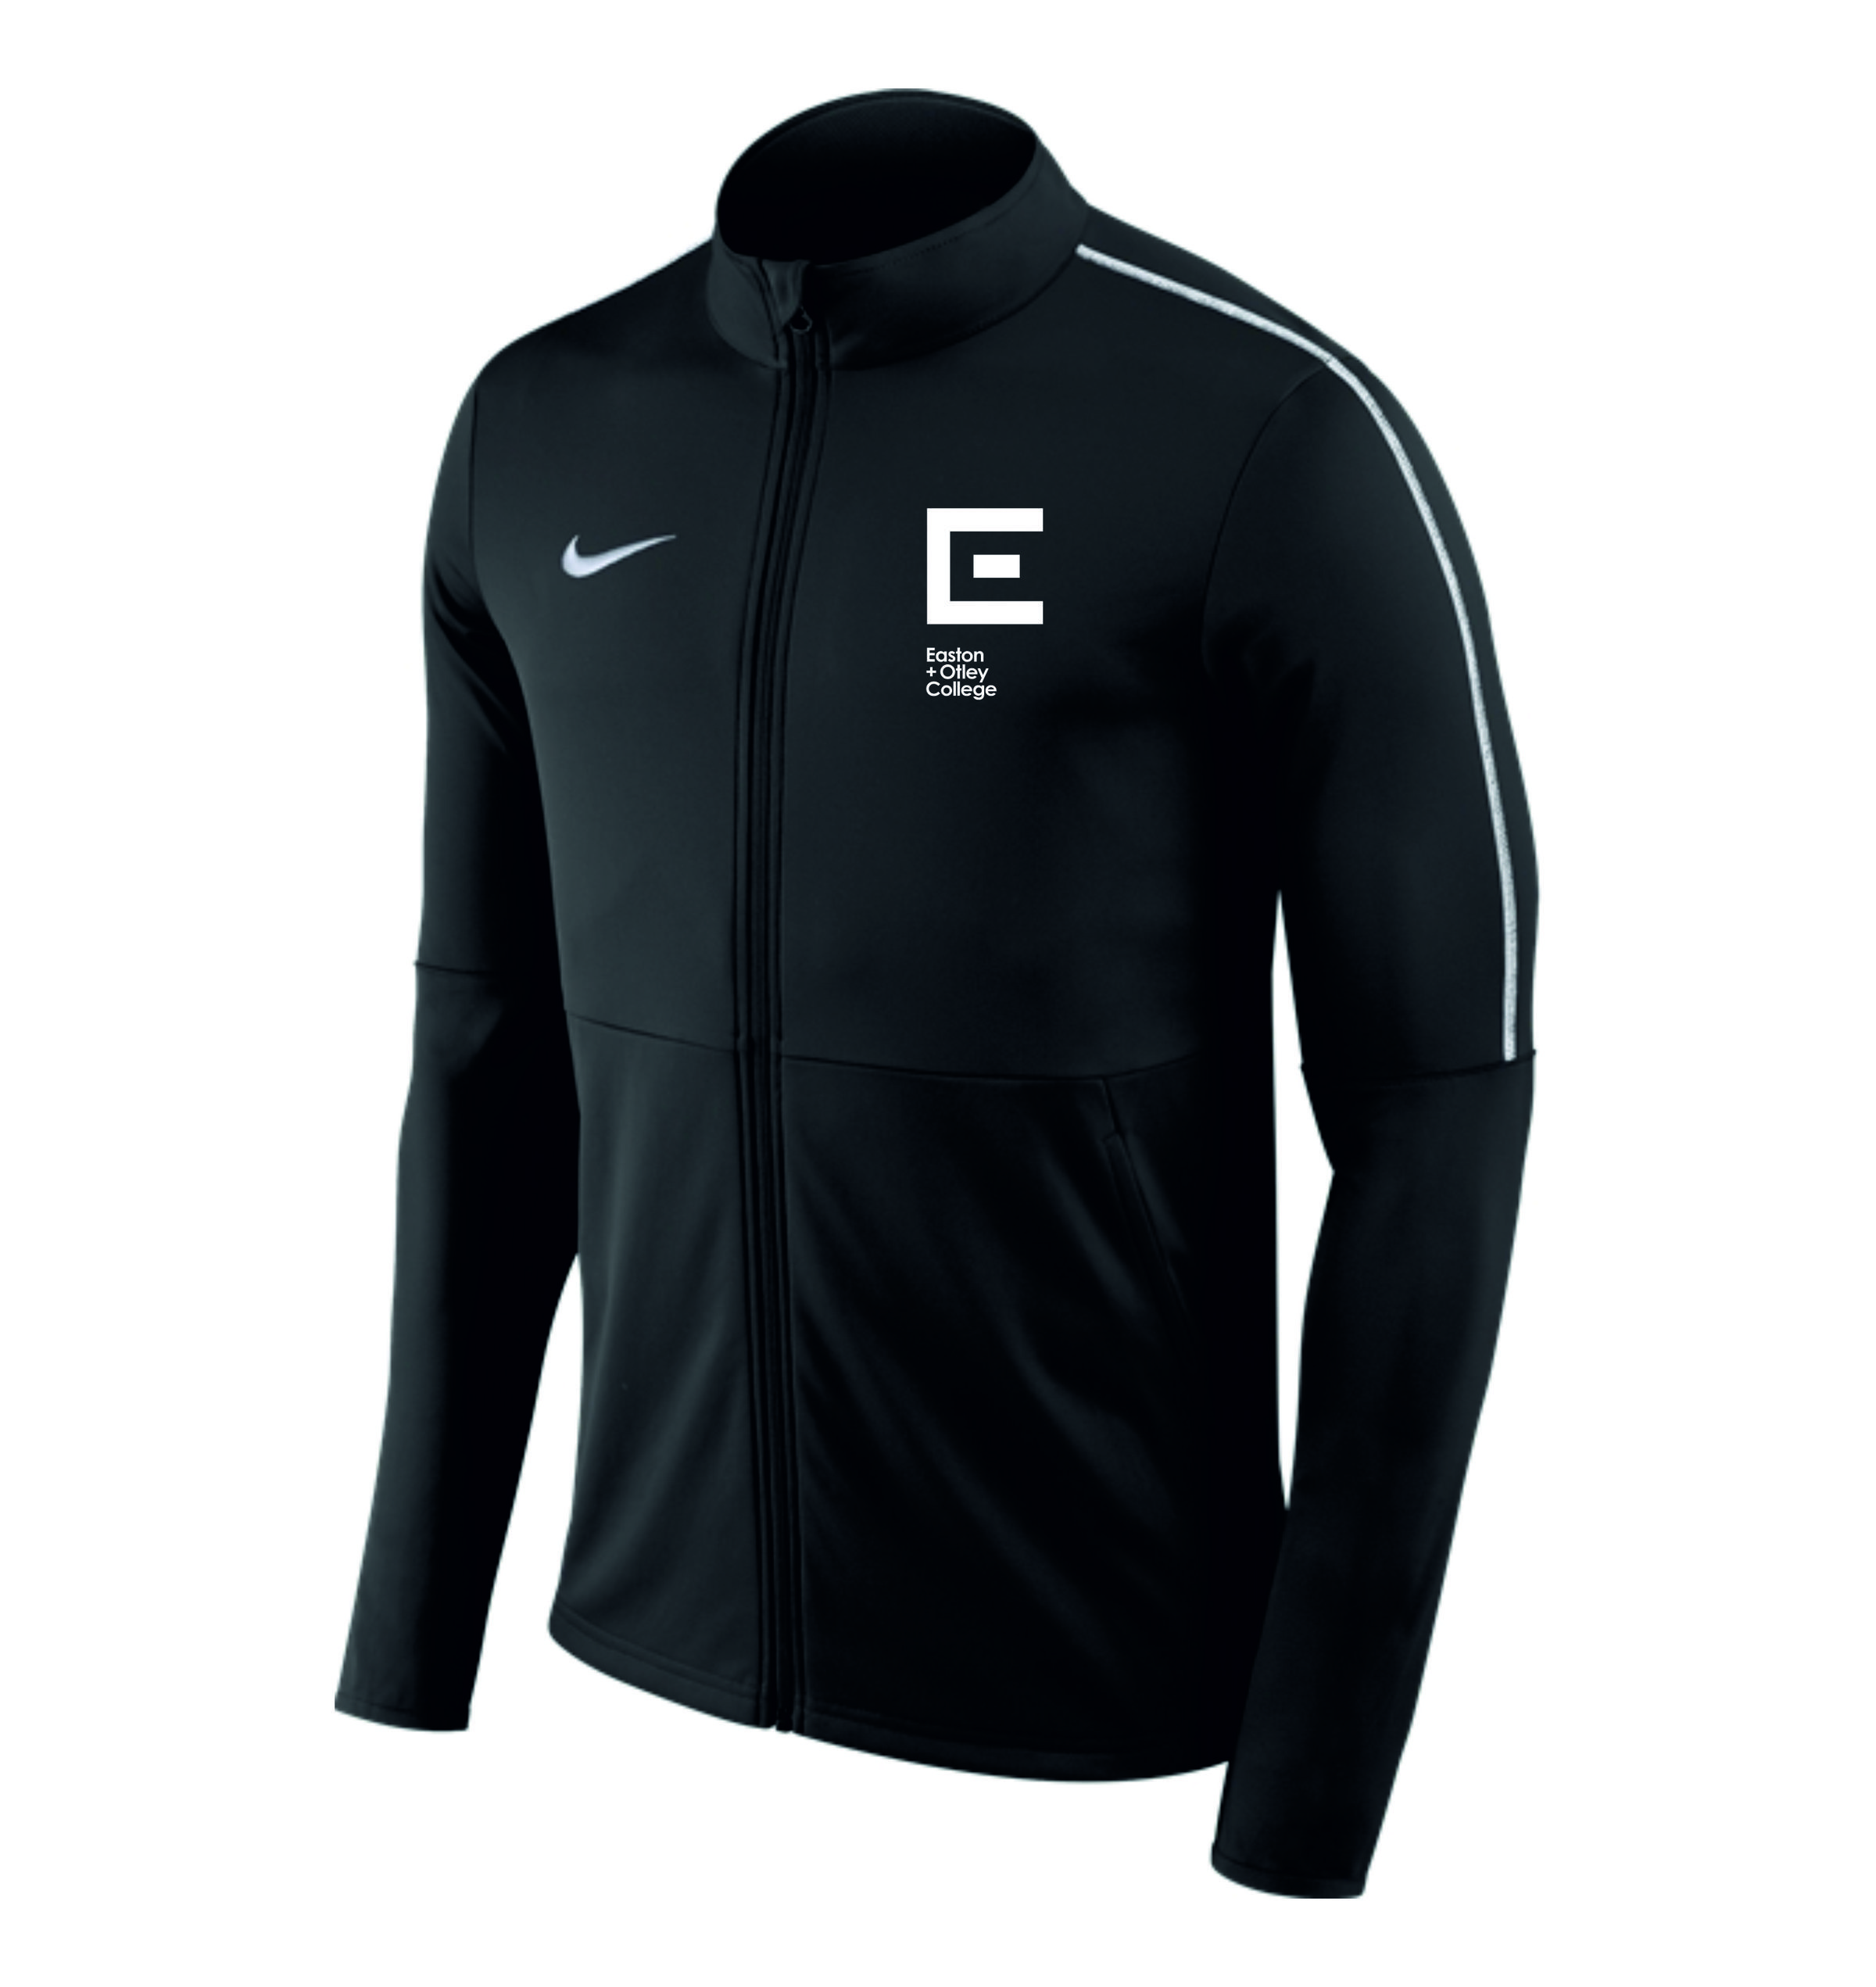 Easton College Football Track Top